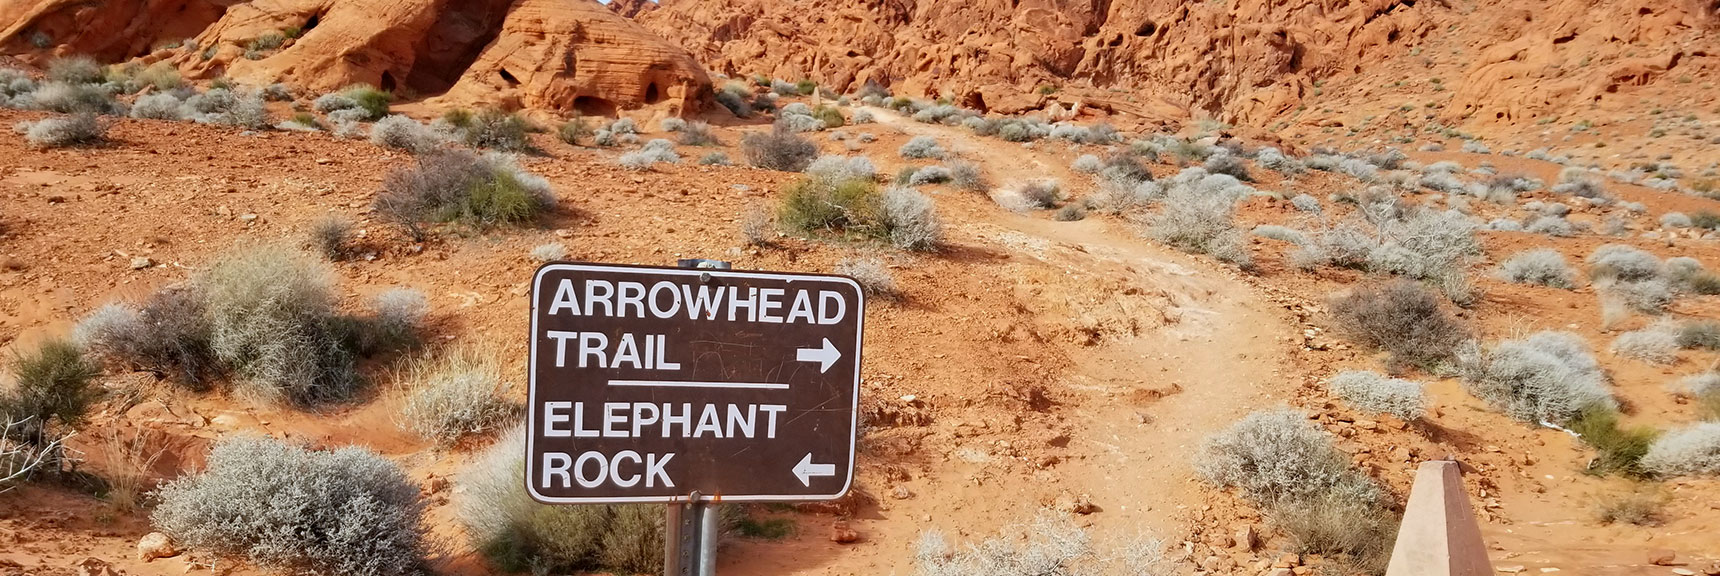 East Entrance to Elephant Rock Loop in Valley of Fire State Park, Nevada Slide